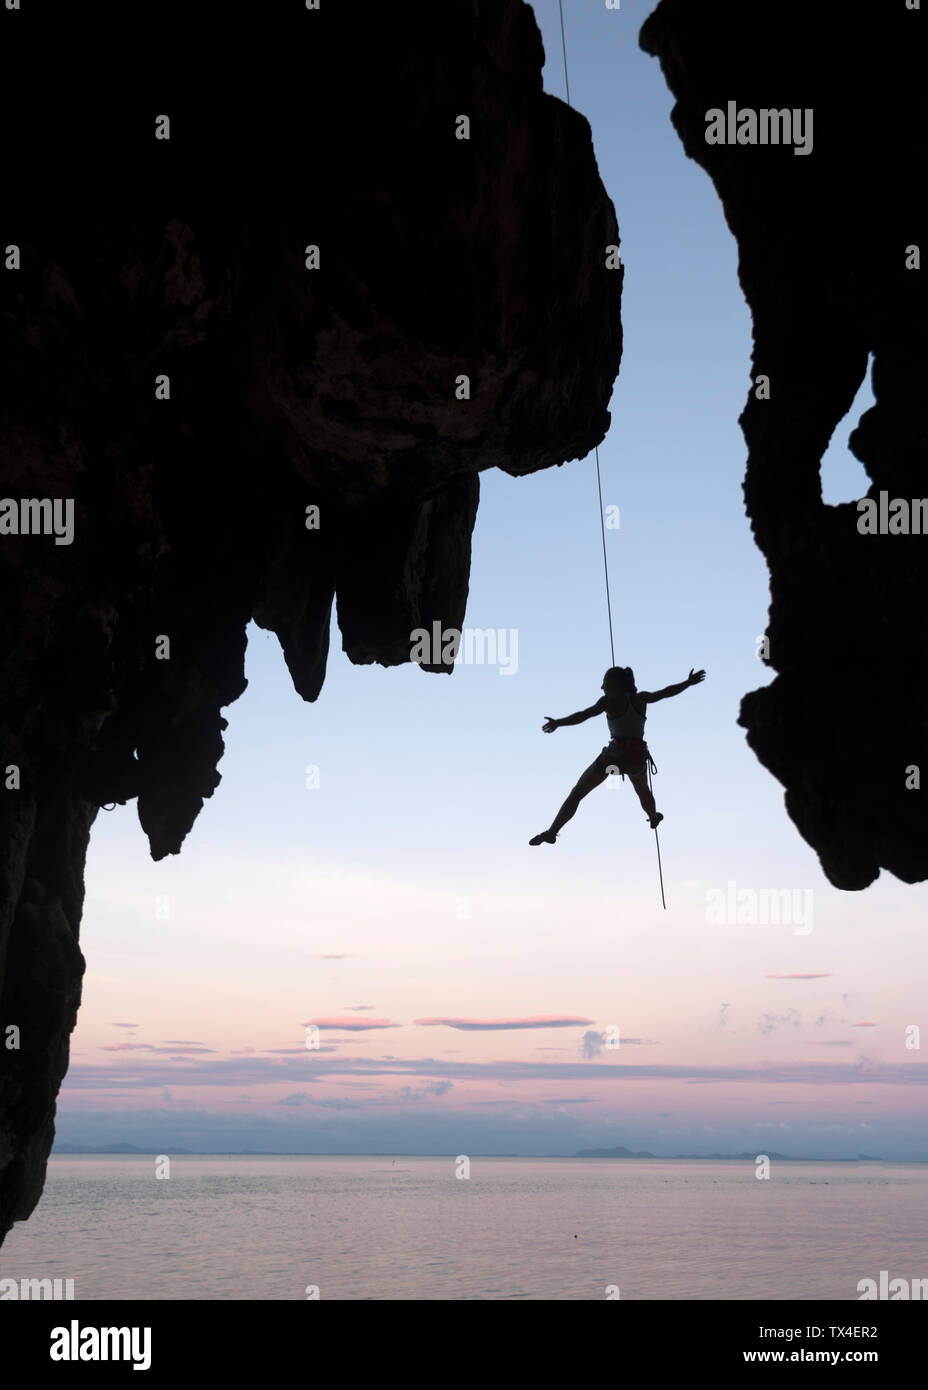 Thailand, Krabi, Lao Liang island, climber abseiling from rock wall above the sea Stock Photo